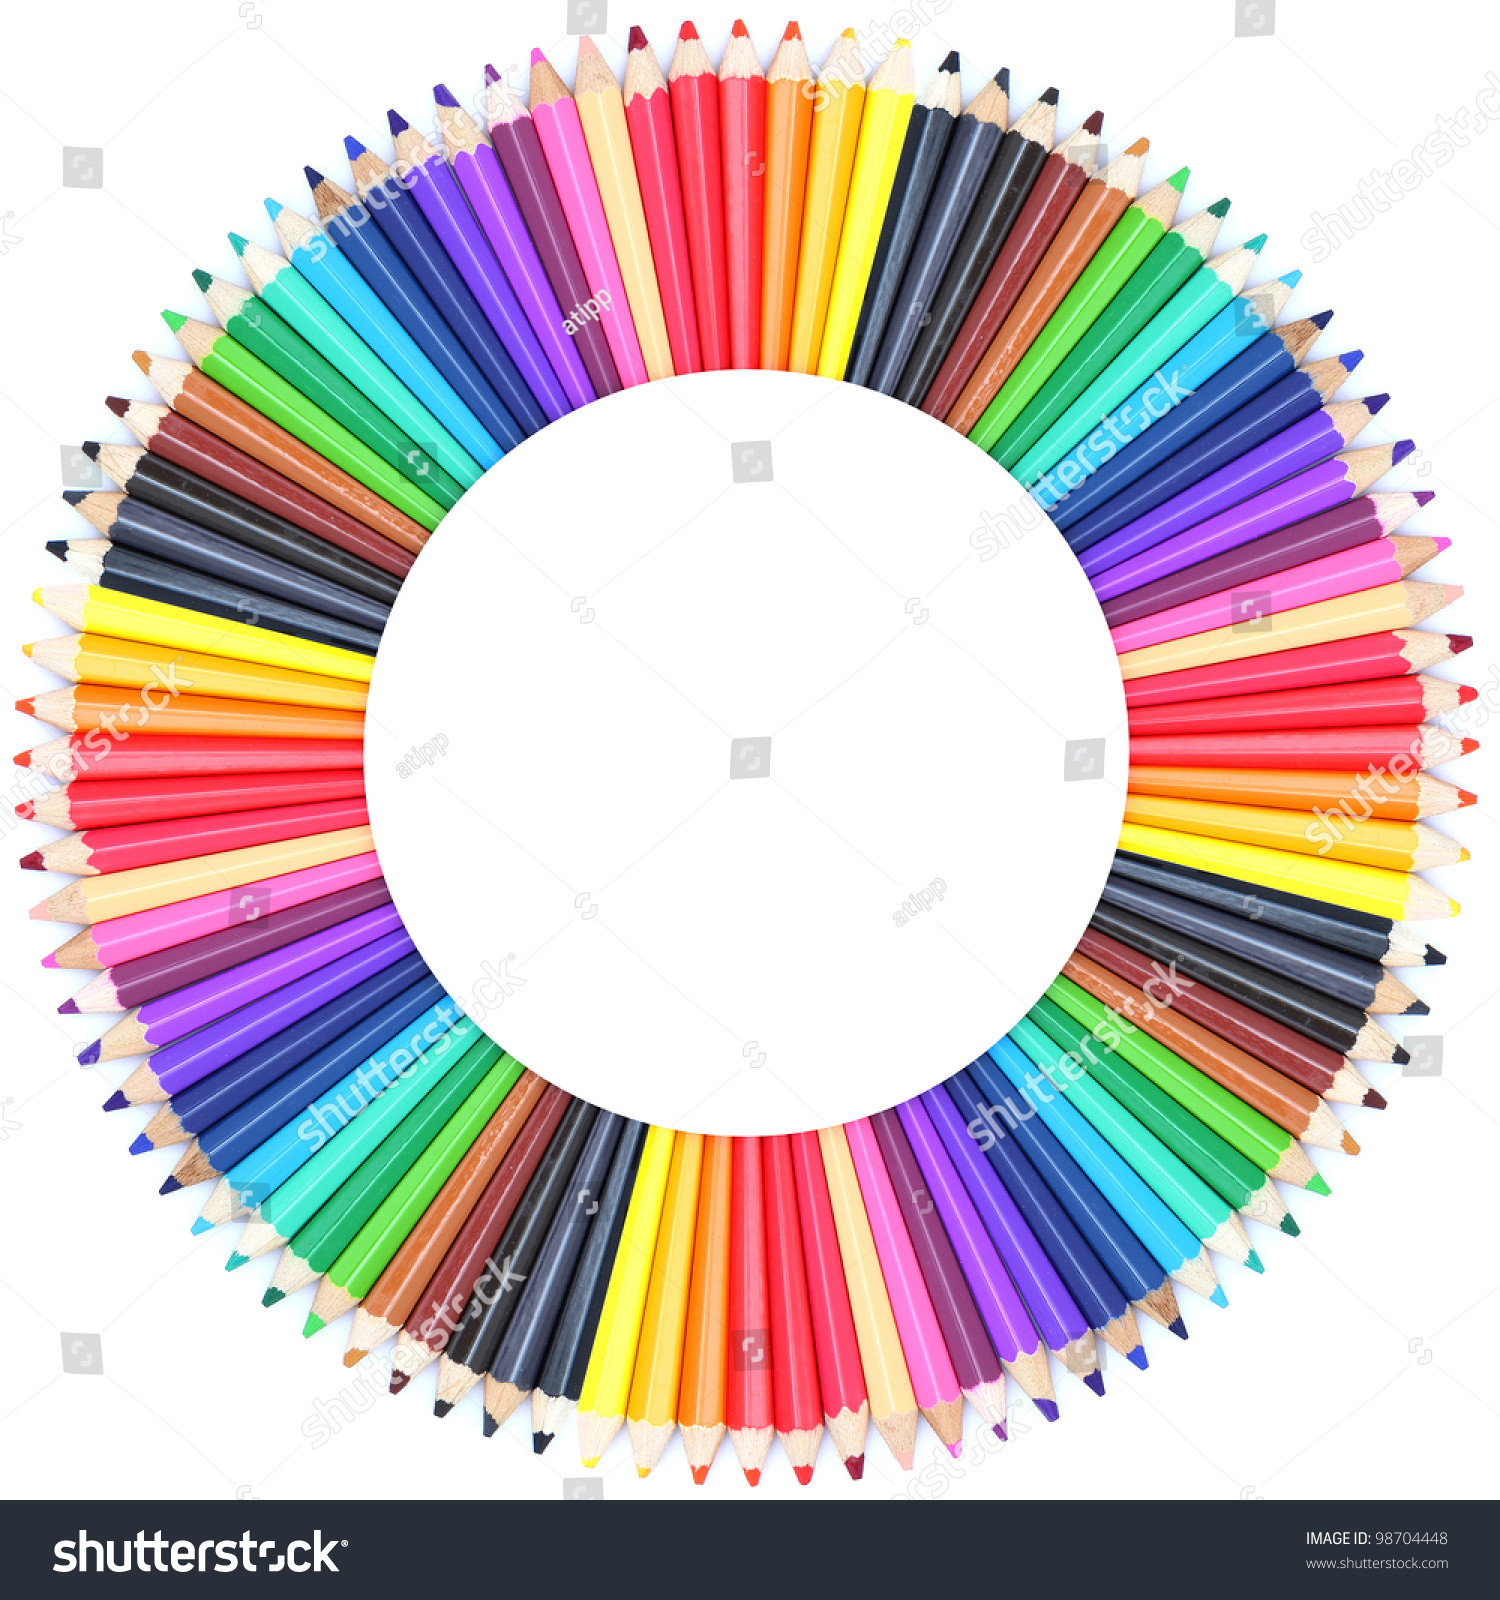 Circle color chart made color pencils stock photo 98704448 circle color chart made of color pencils nvjuhfo Images